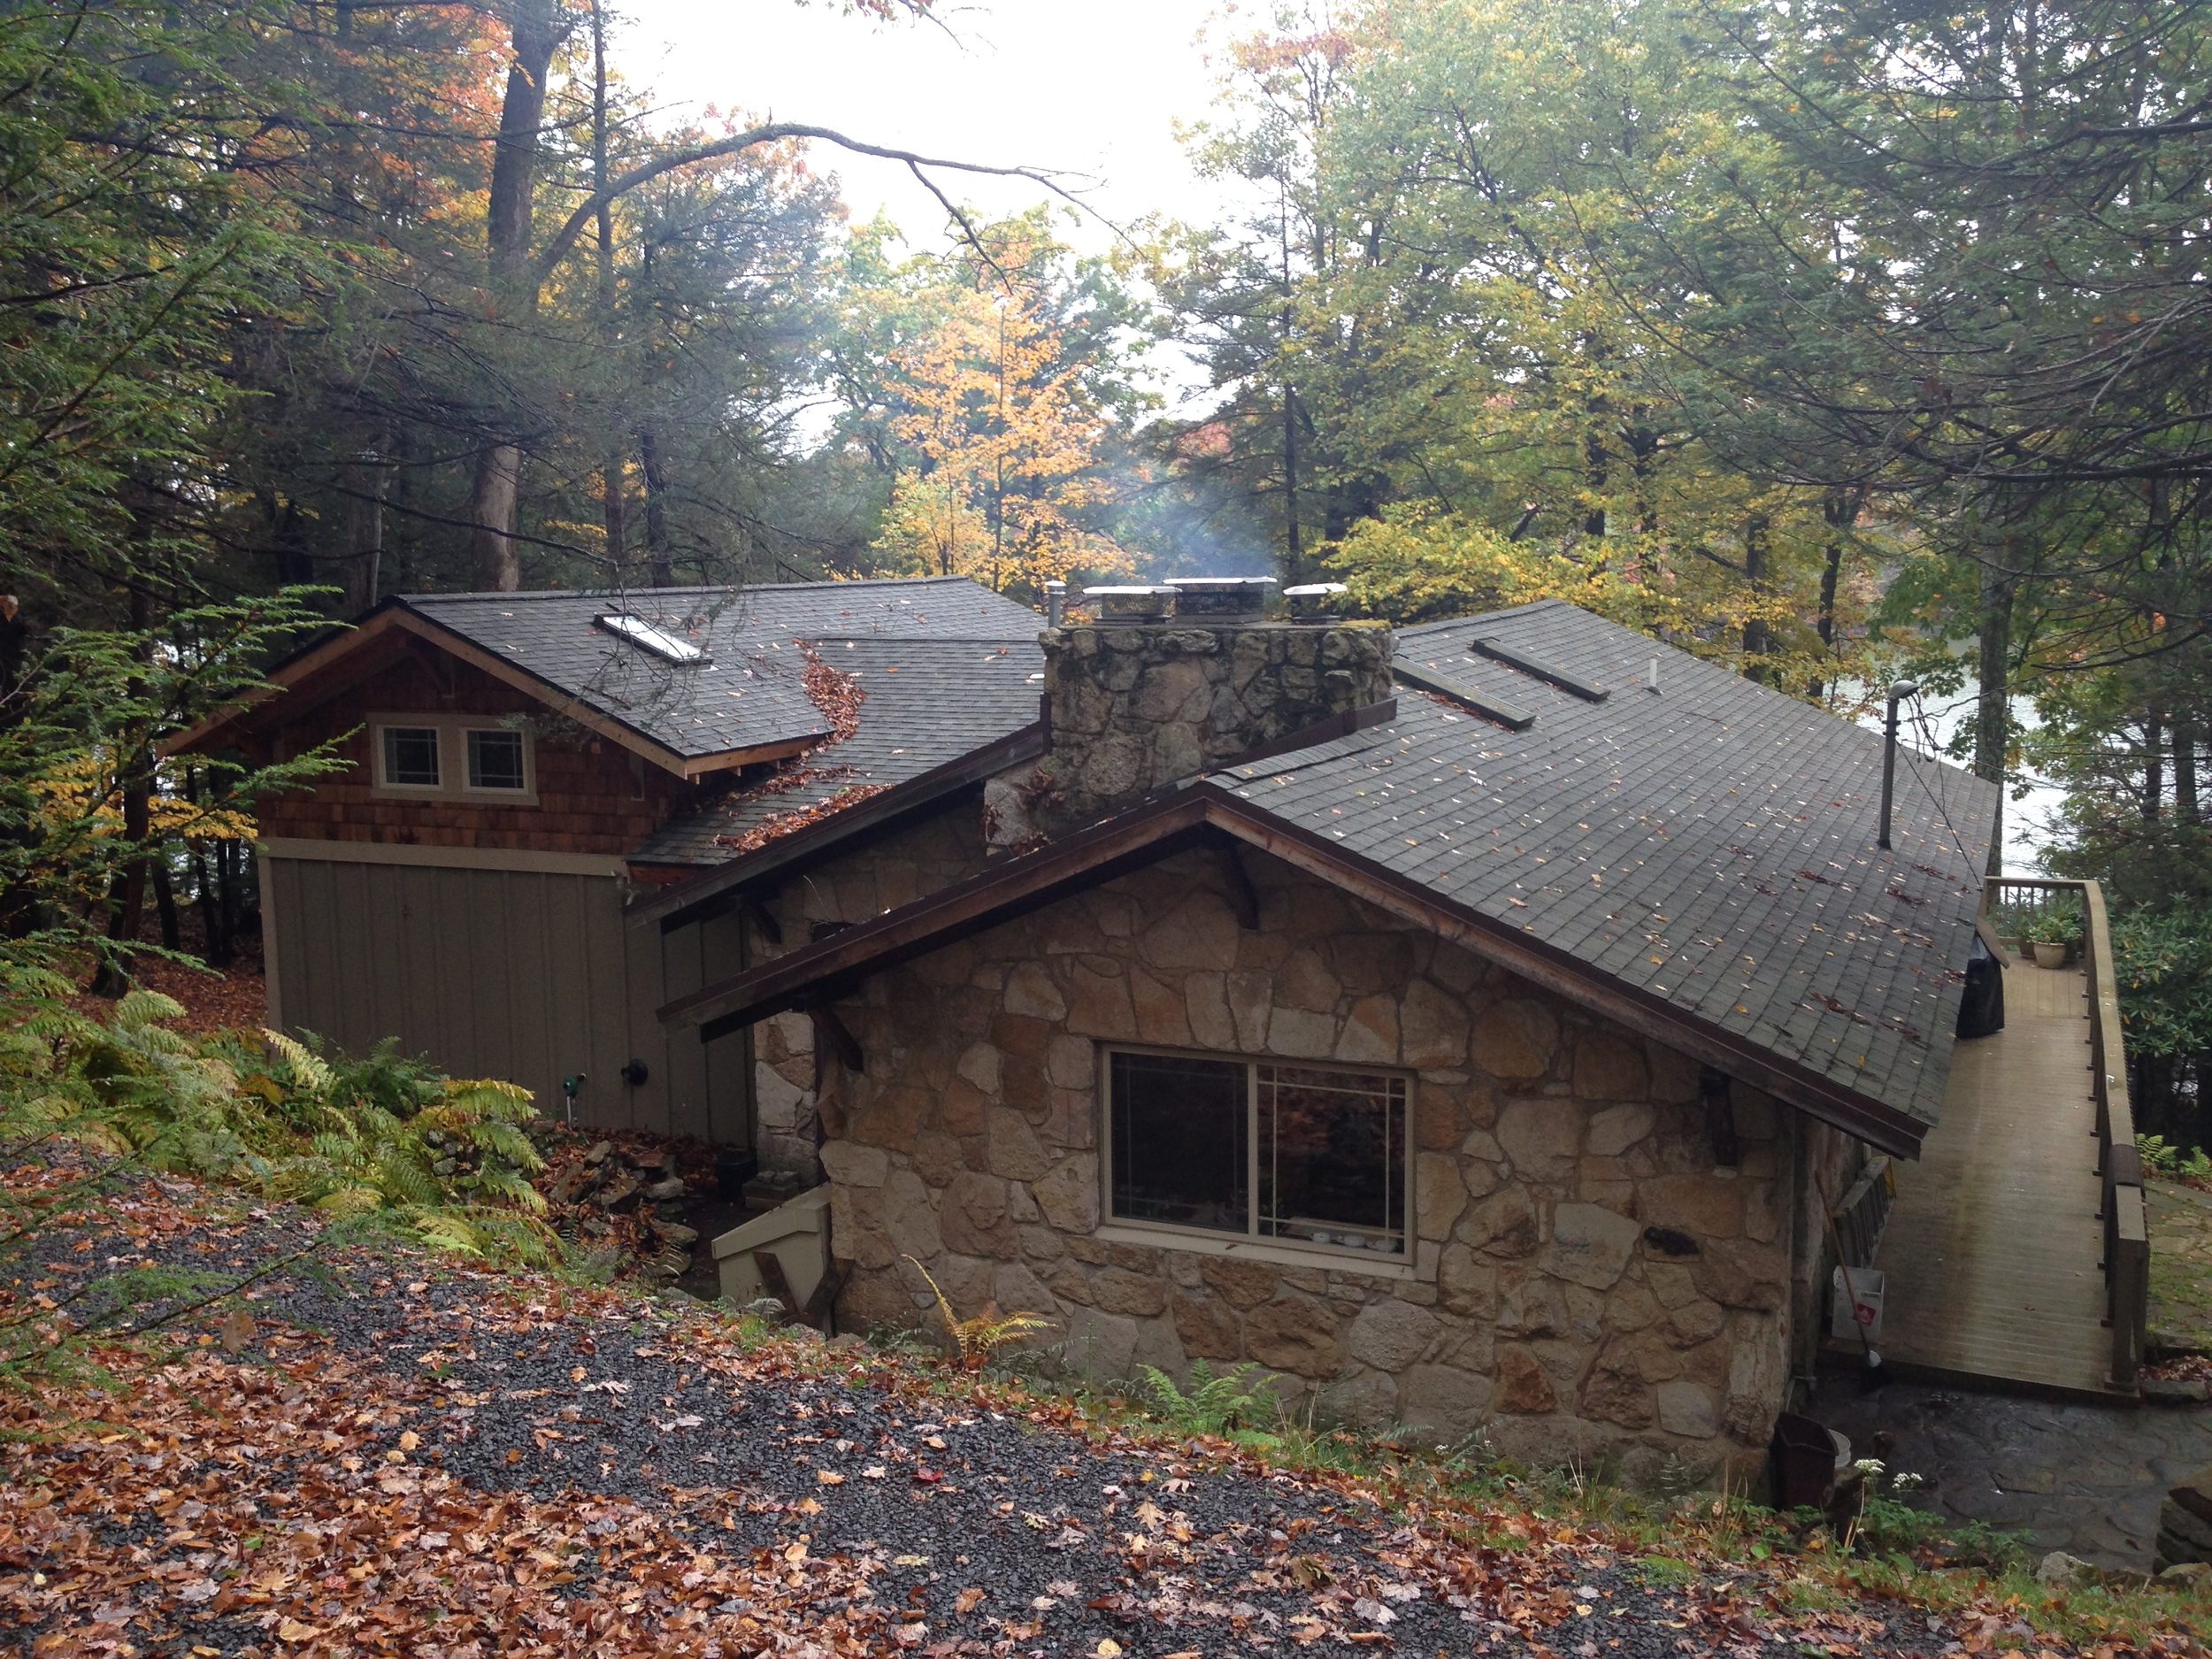 View from the driveway. The original house is on the right. Note how the roof pitches of the new addition complement the existing.